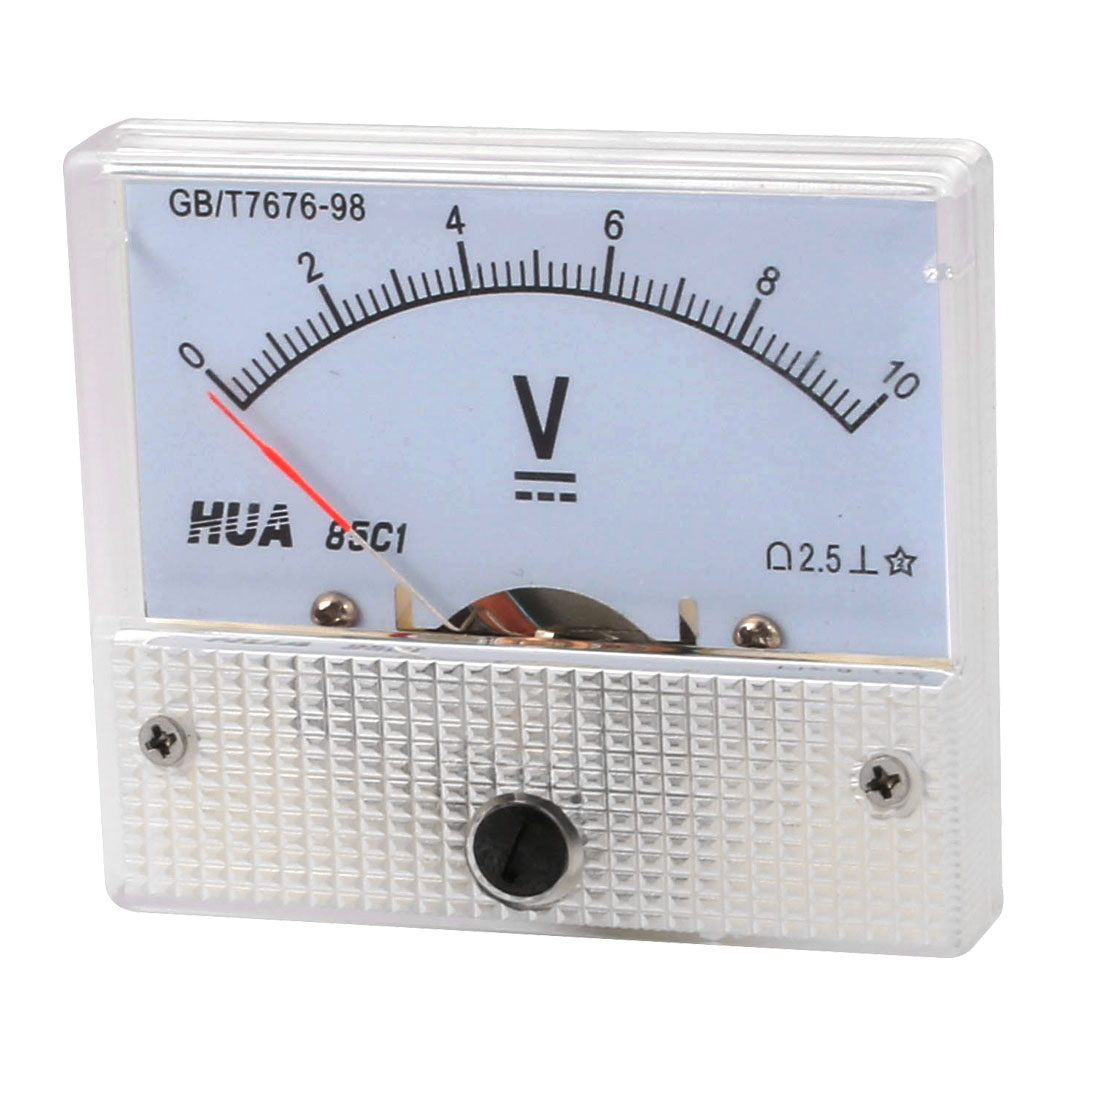 64mm x 56mm Dial Panel Gauge Voltage Voltmeter DC 0-10V 85C1-V